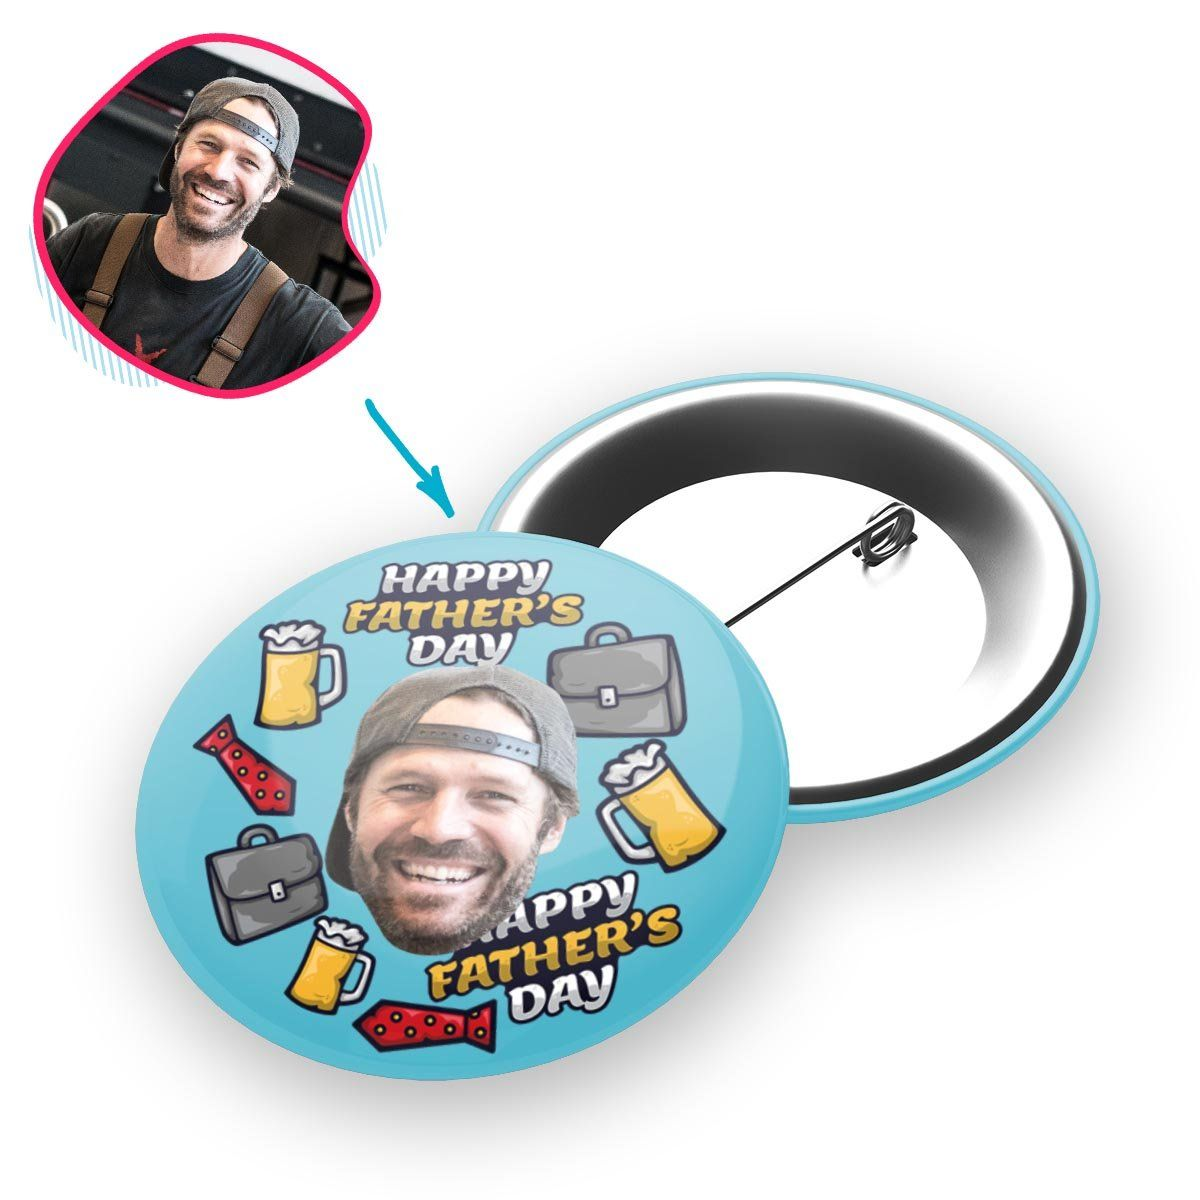 Blue Fathers Day personalized pin with photo of face printed on it